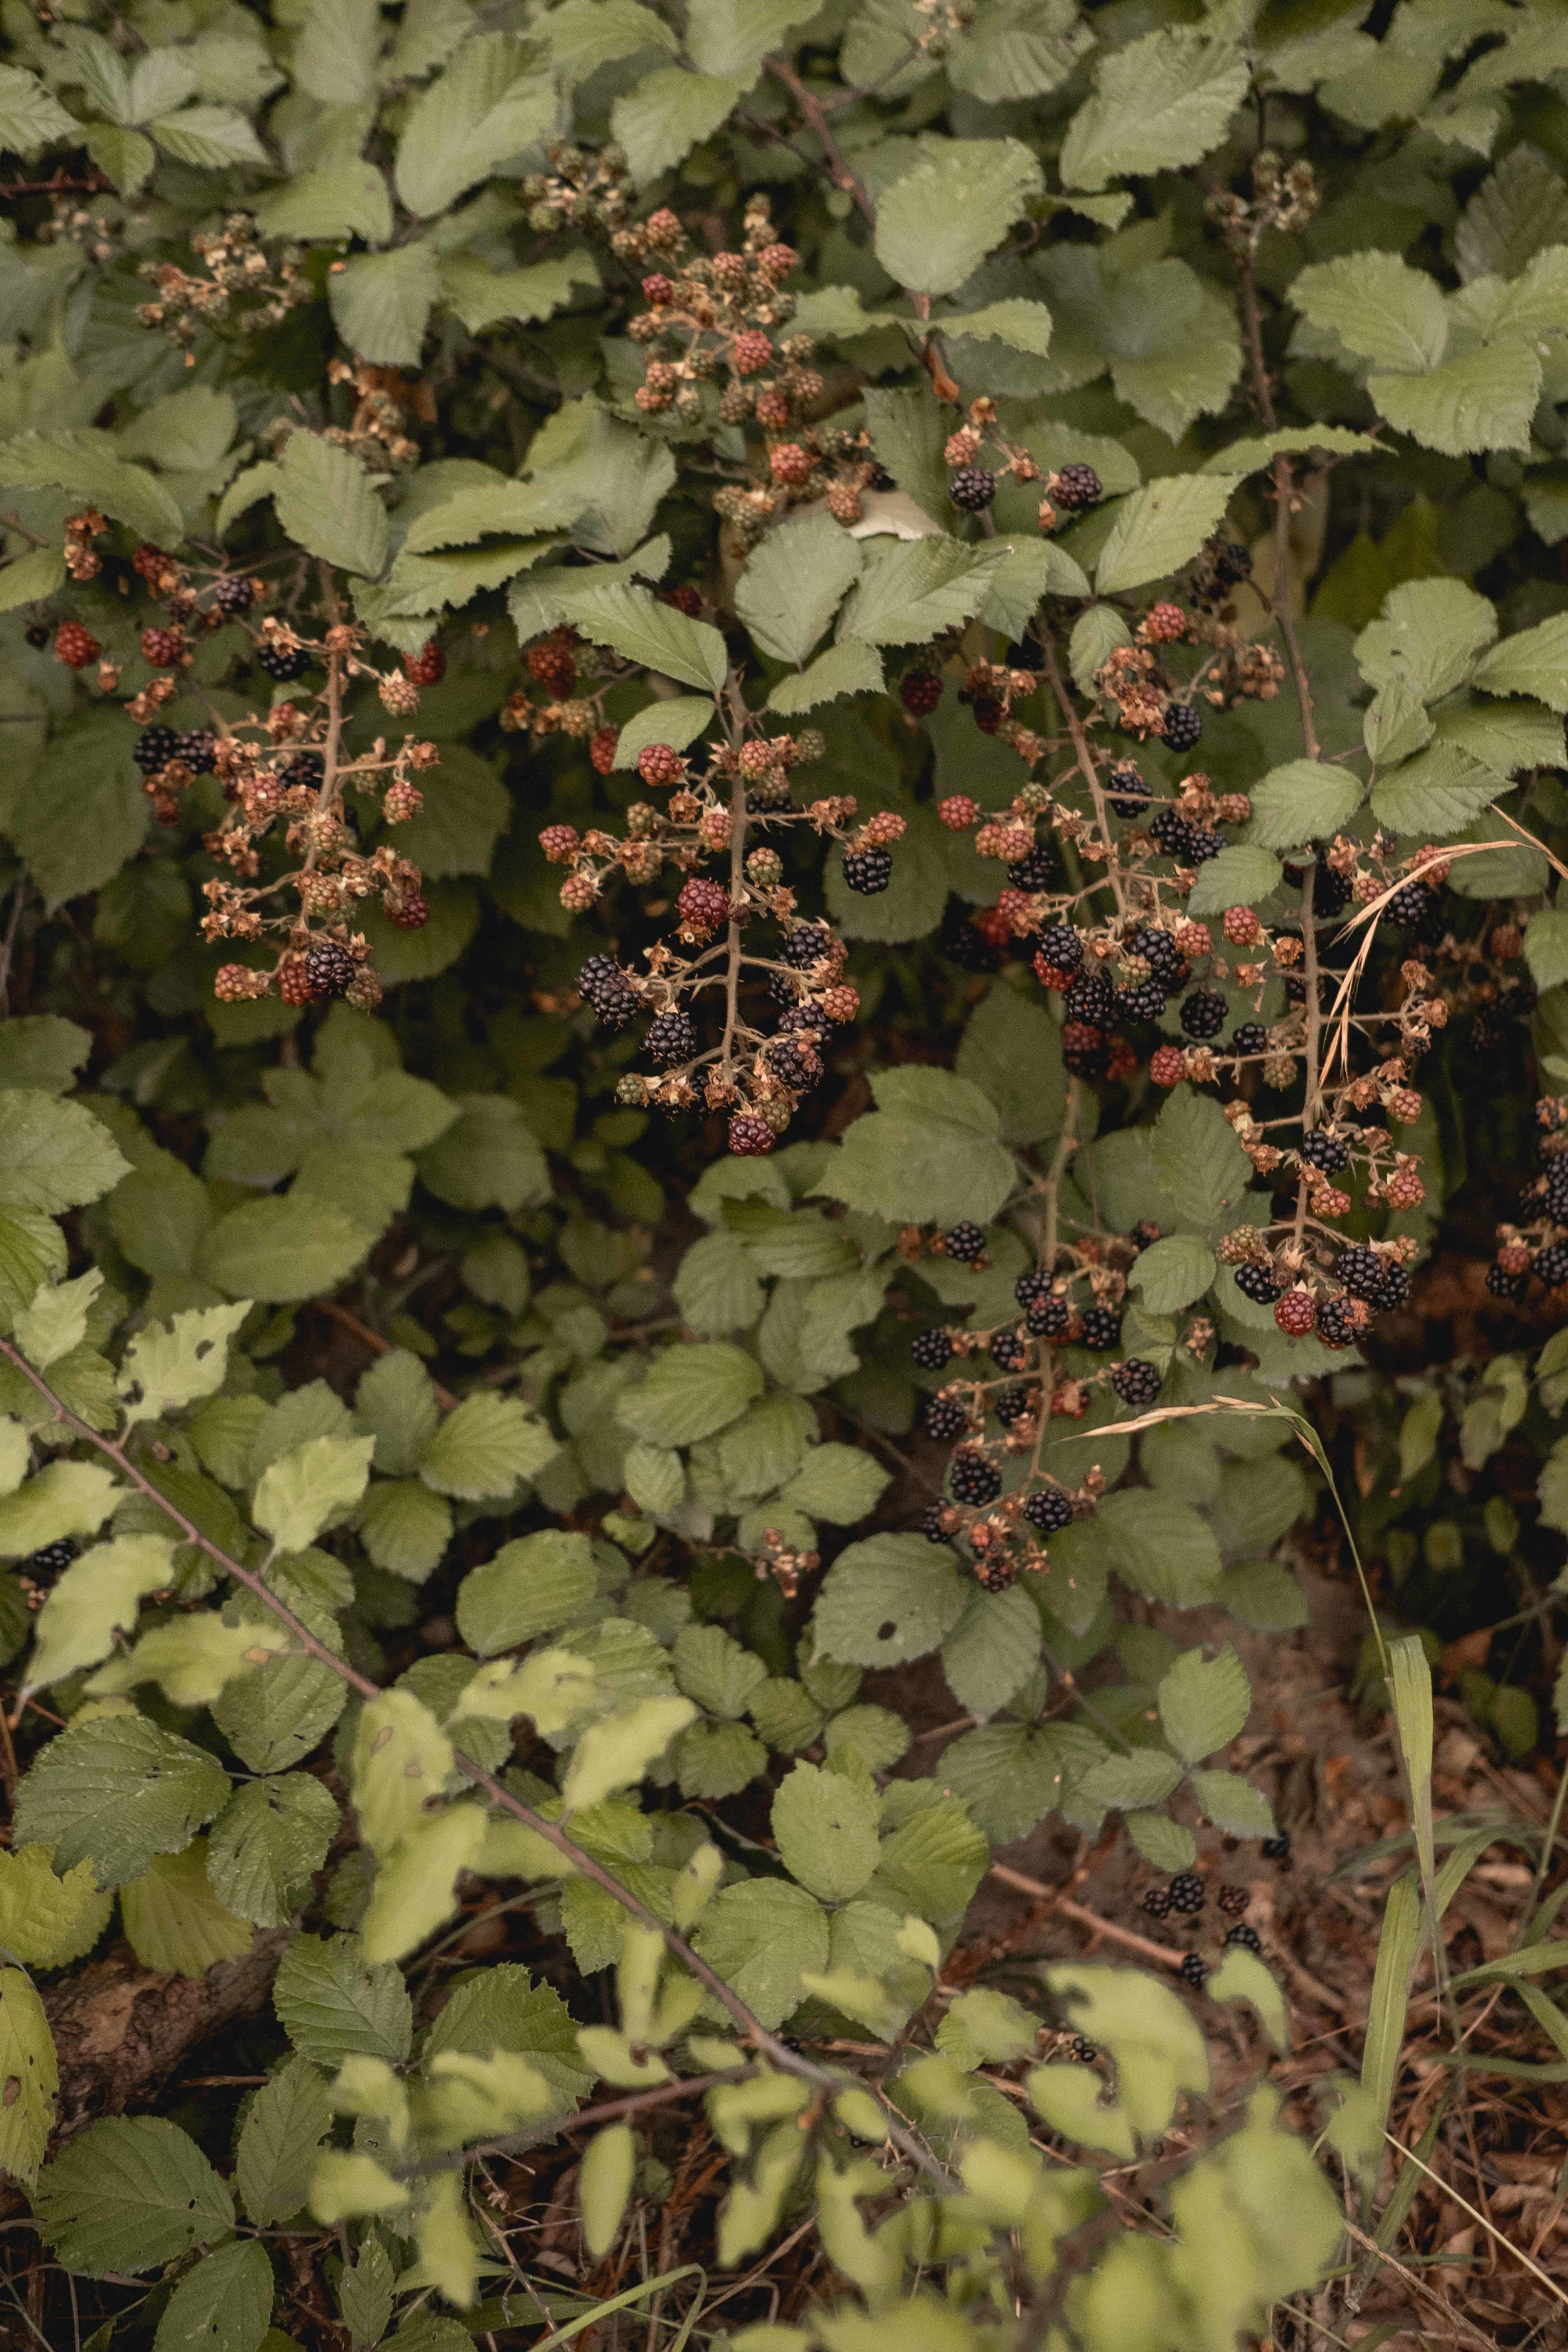 The before-mentioned, roadside blackberries, of course!